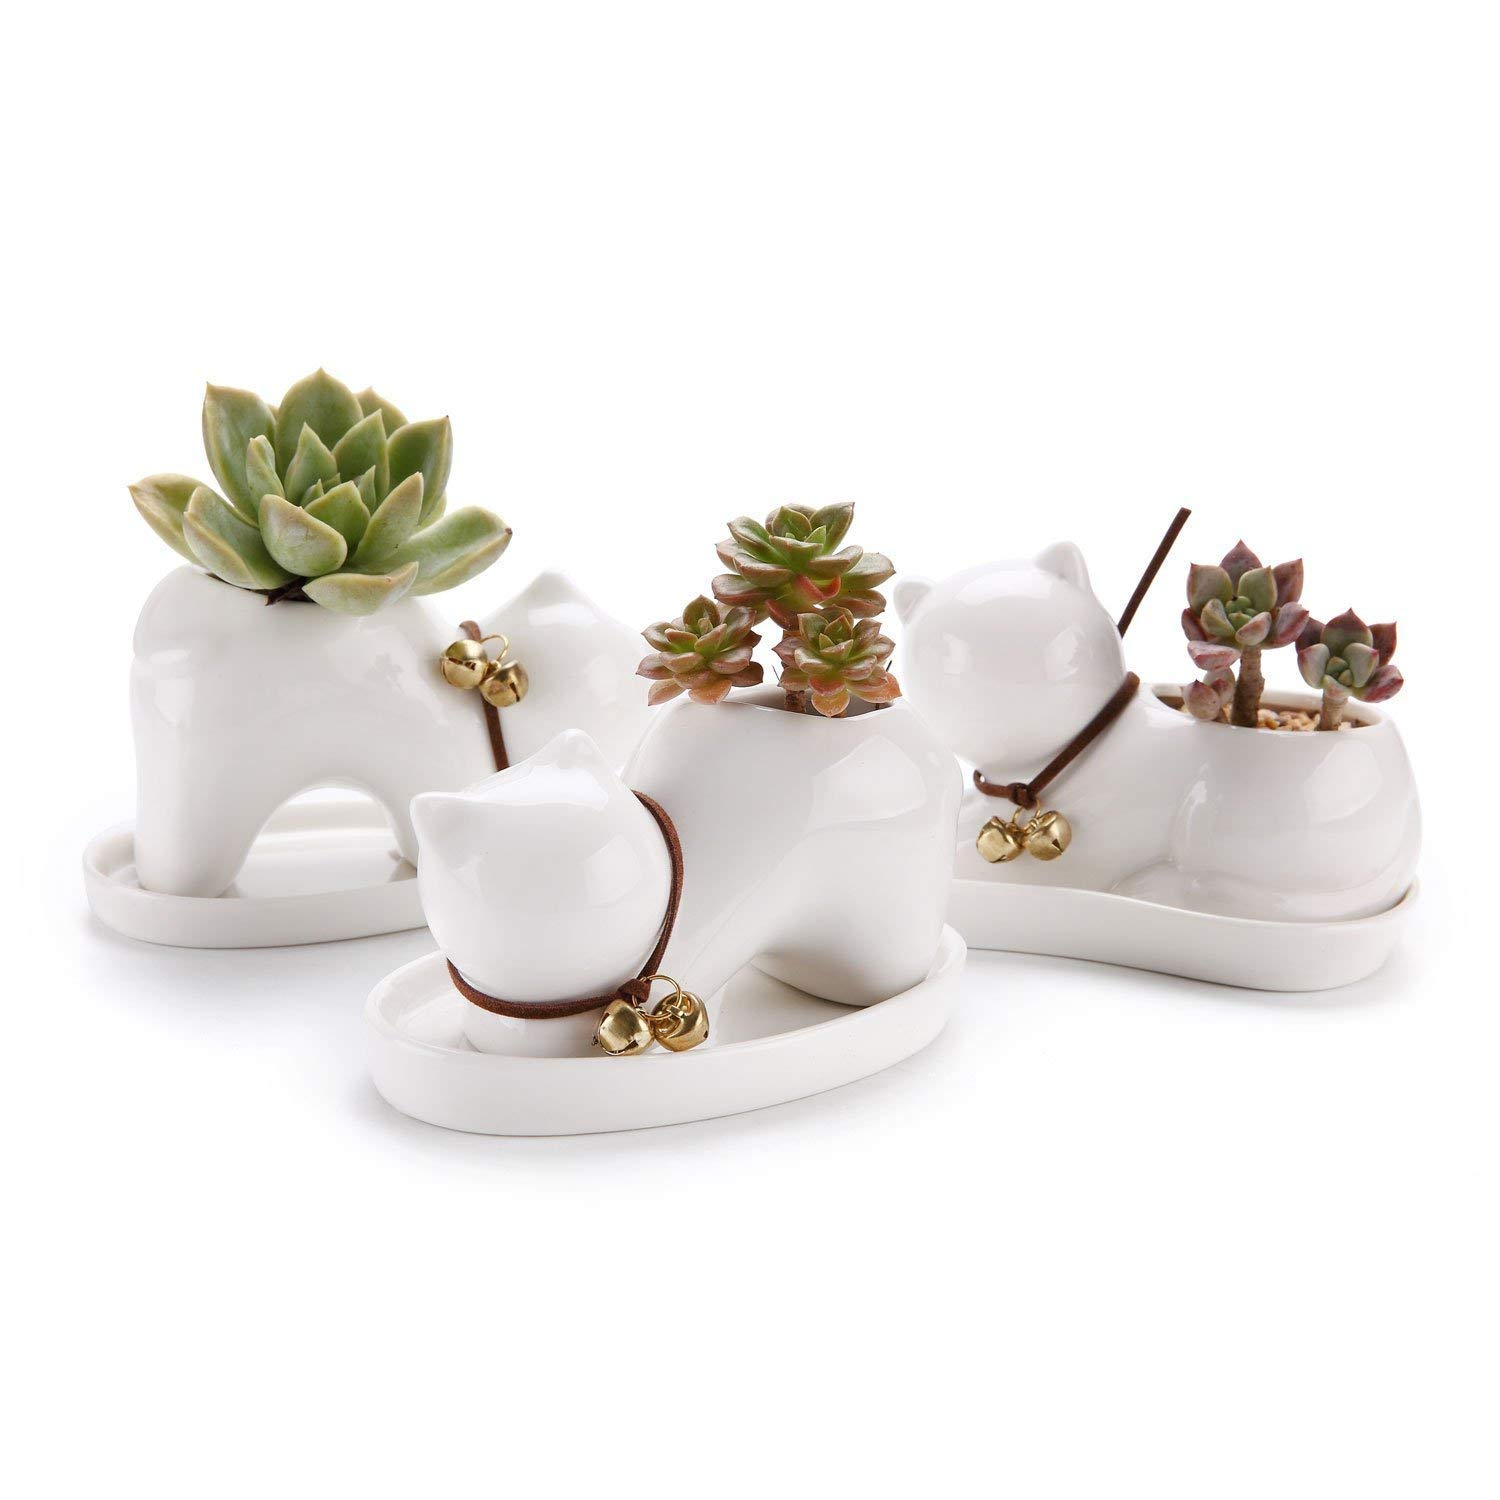 T4U Lazy Cat Ceramic Succulent Cactus Planter Pot Set with Golden Bell and Porcelain Saucer - Collection of 3, Home and Office Decoration Desktop Bonsai Pots Gift for Wedding Birthday Christmas